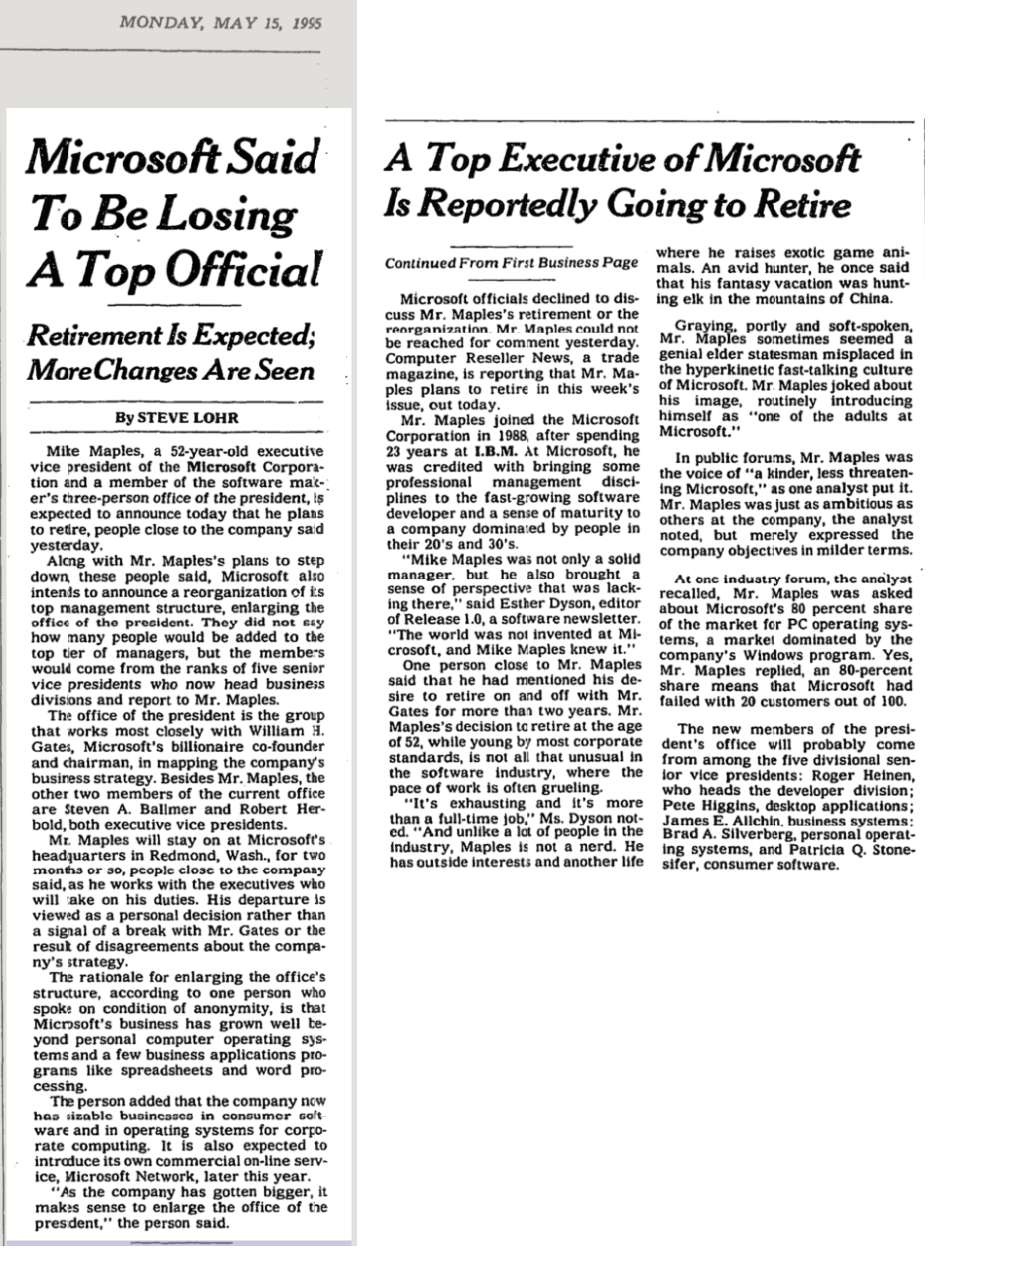 Microsoft said to be losing a top official. Retirement is expected; more changes are seen.